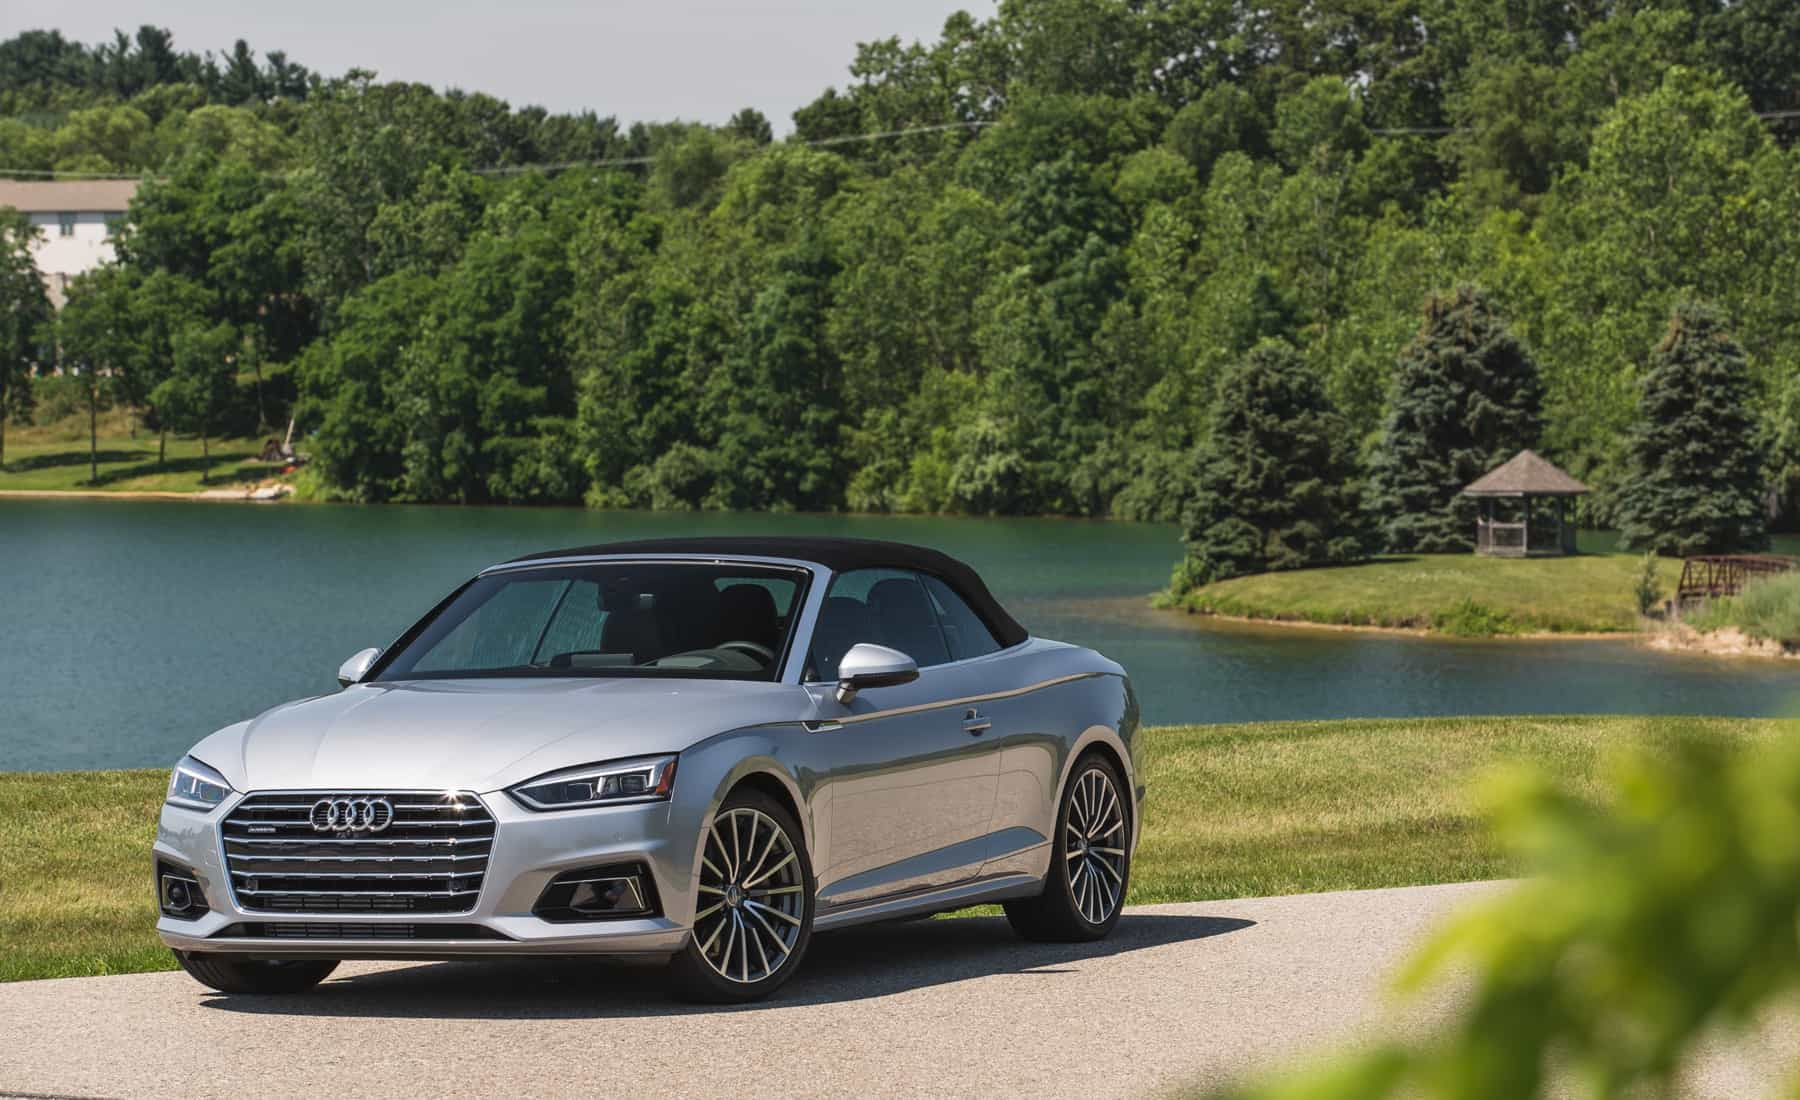 2018 Audi A5 Cabriolet Exterior Roof Close (Photo 45 of 45)